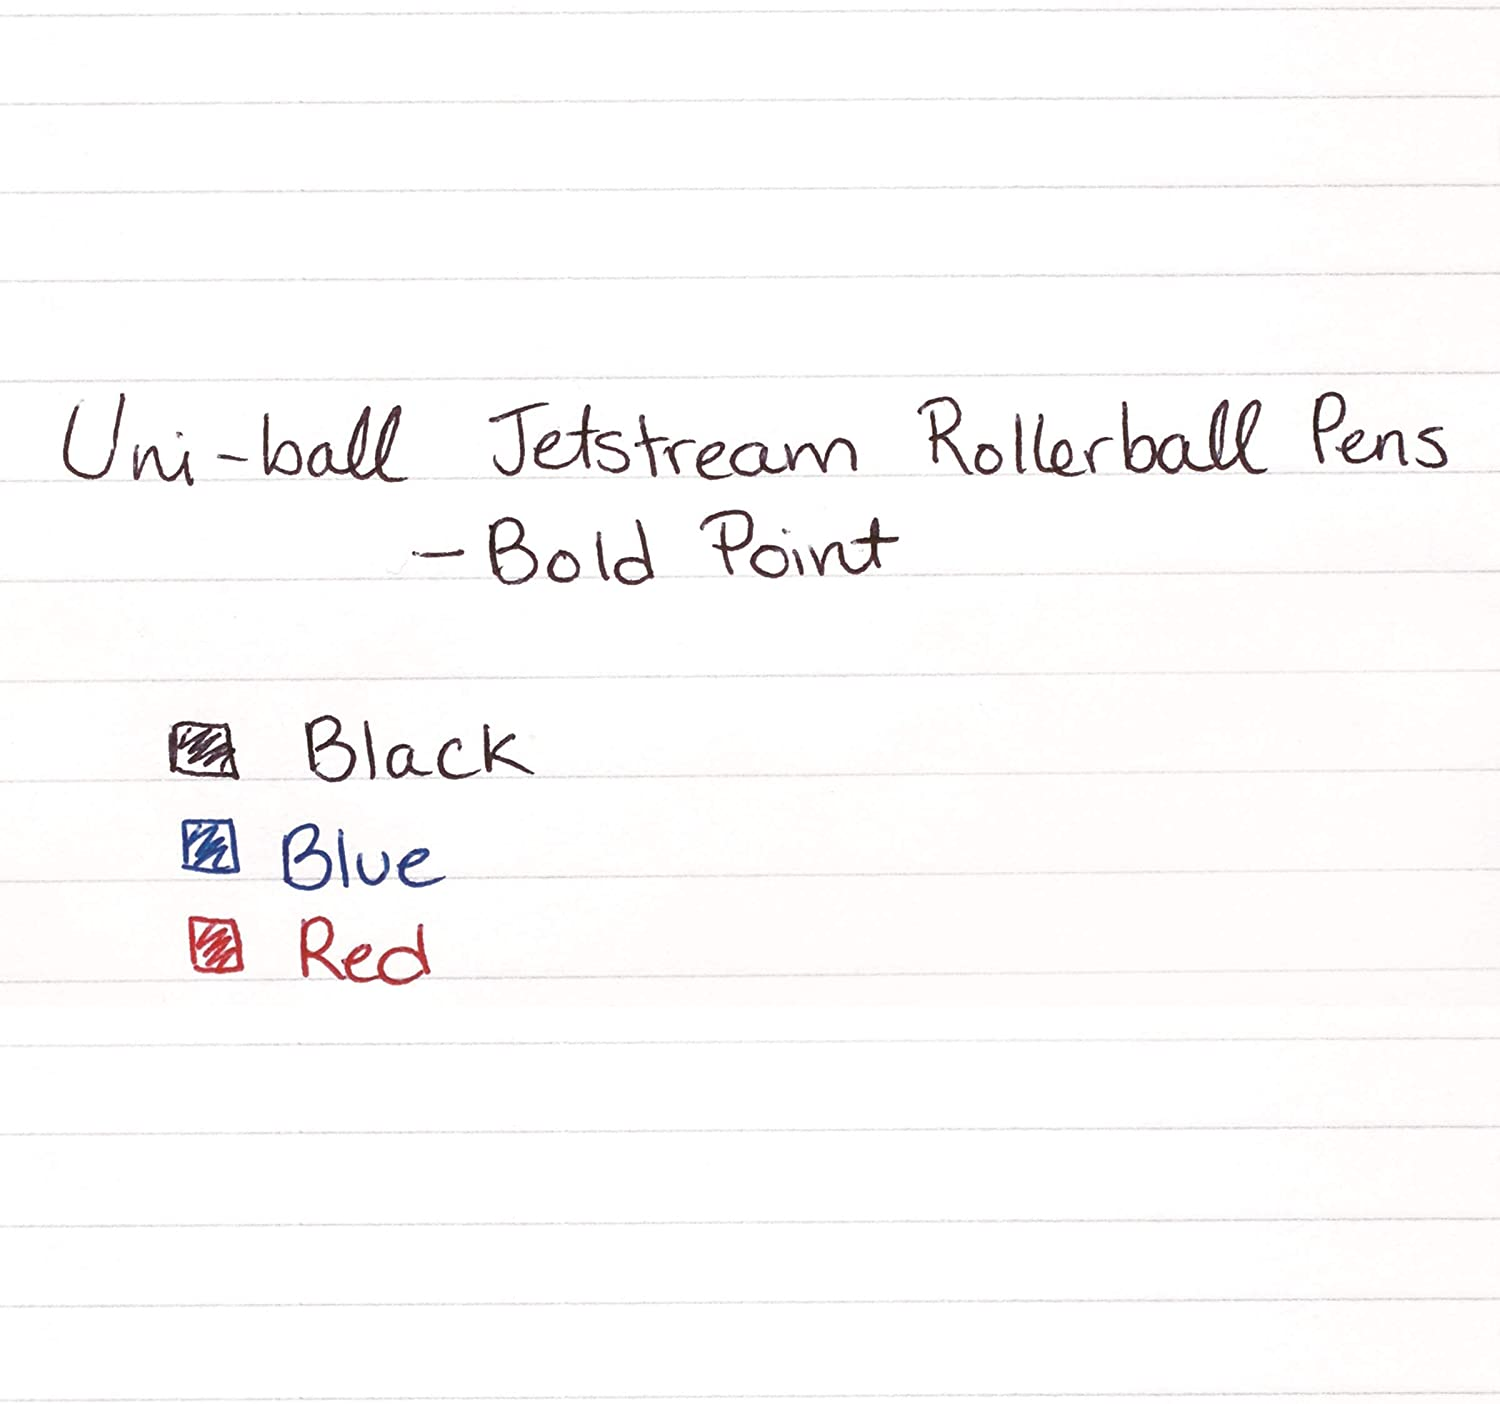 Uni-Ball 73832 uni-ball Jetstream RT Ballpoint Pens, Bold Point (1.0mm), Black, 12 Count : Rollerball Pens : Office Products